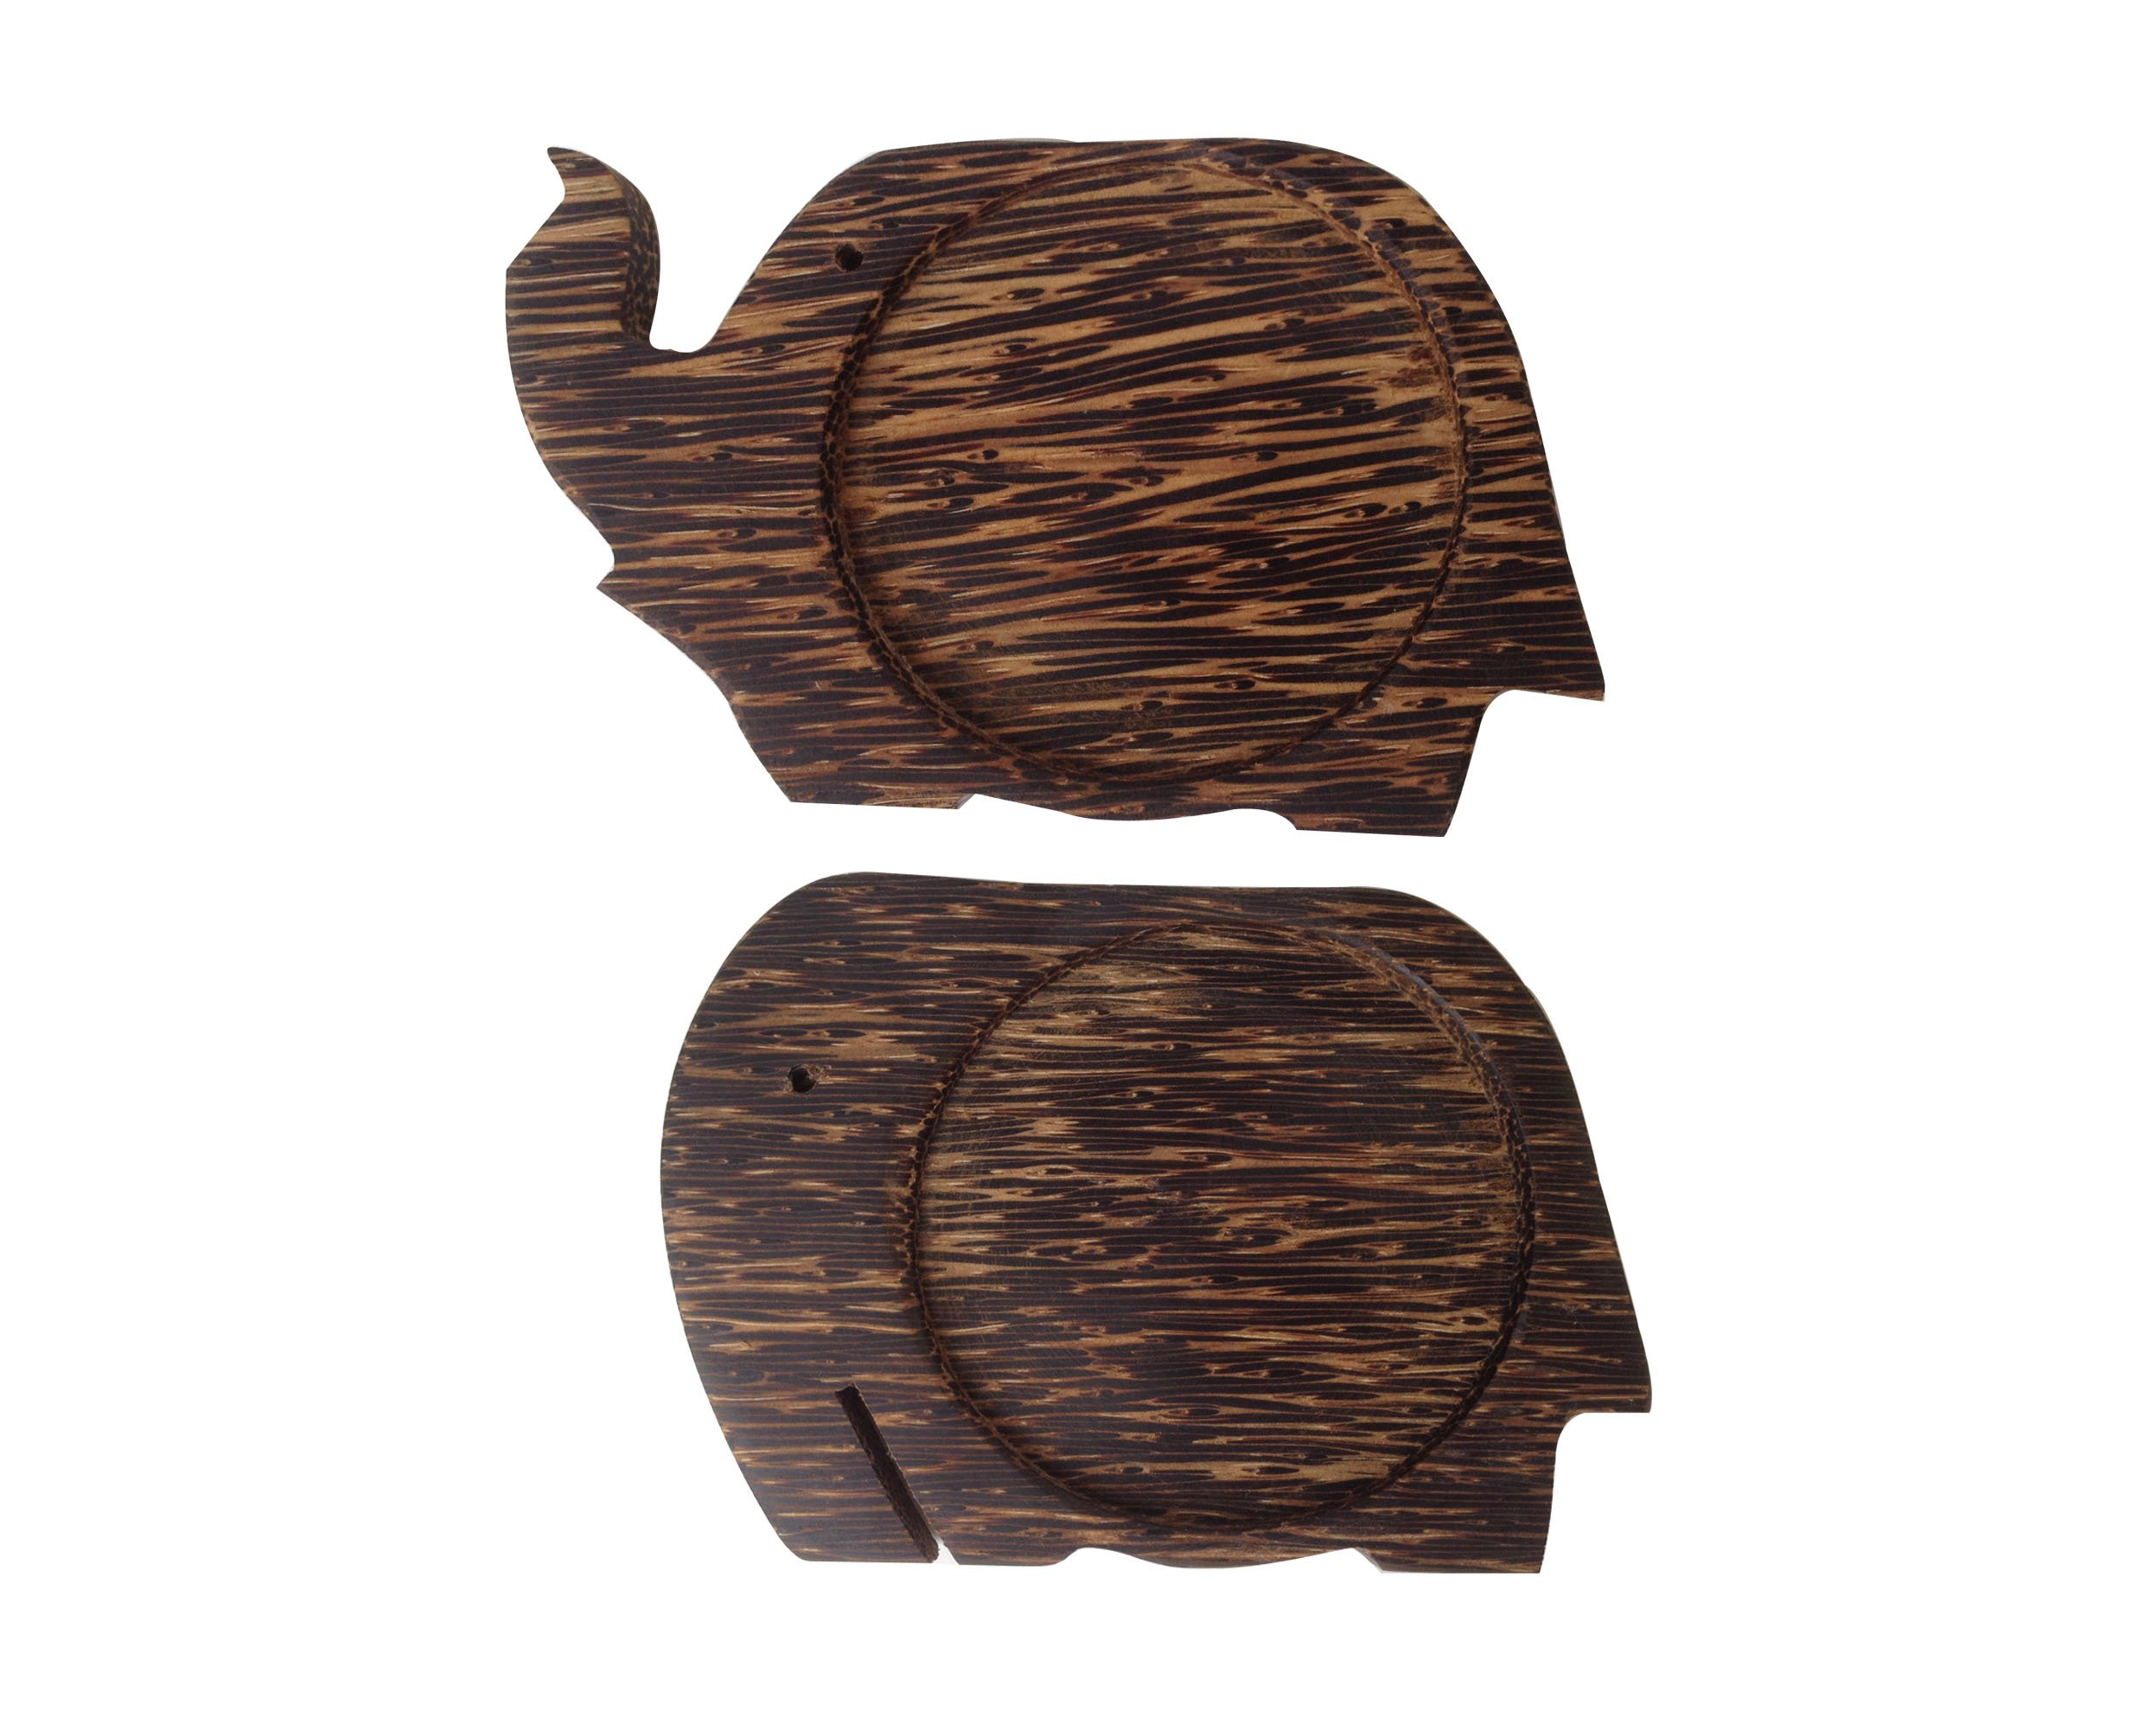 Wood For Décor Wooden Elephant Shape Saucer Toddy Balm Small Natural Color Set of 2 Pieces by Wood For Décor